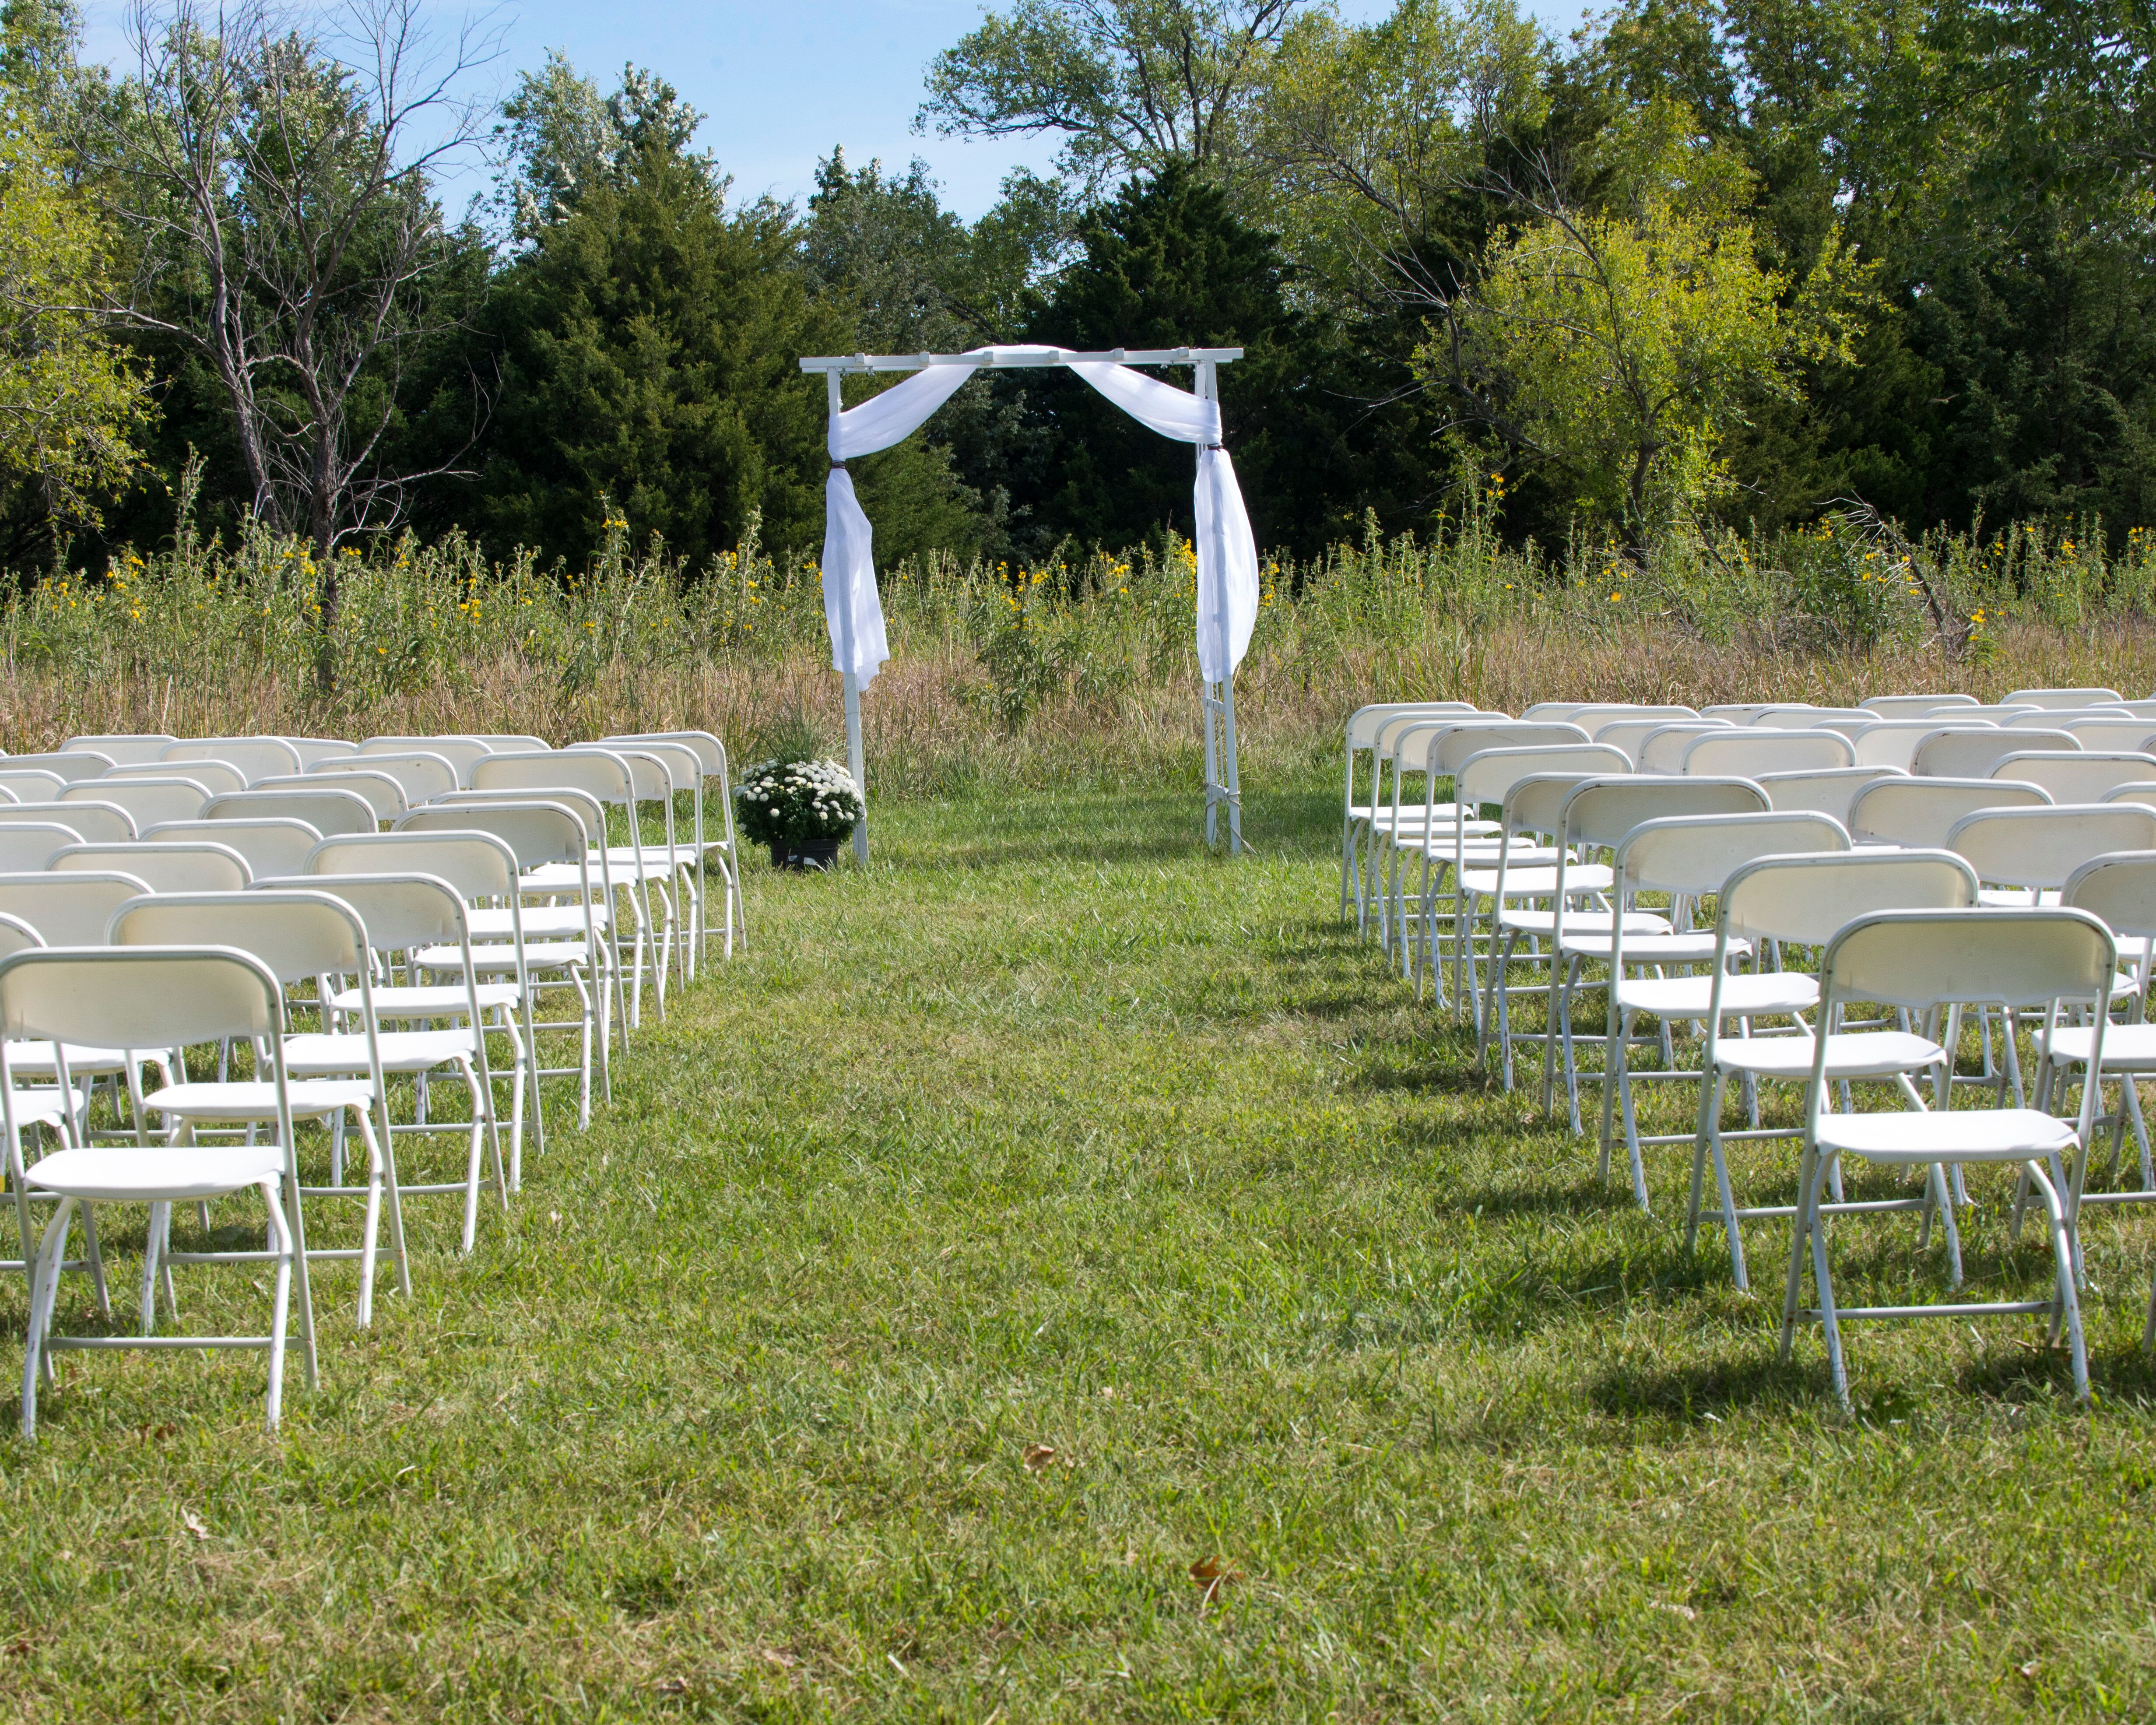 Simple White Wedding Arbor At Outdoor Ceremony